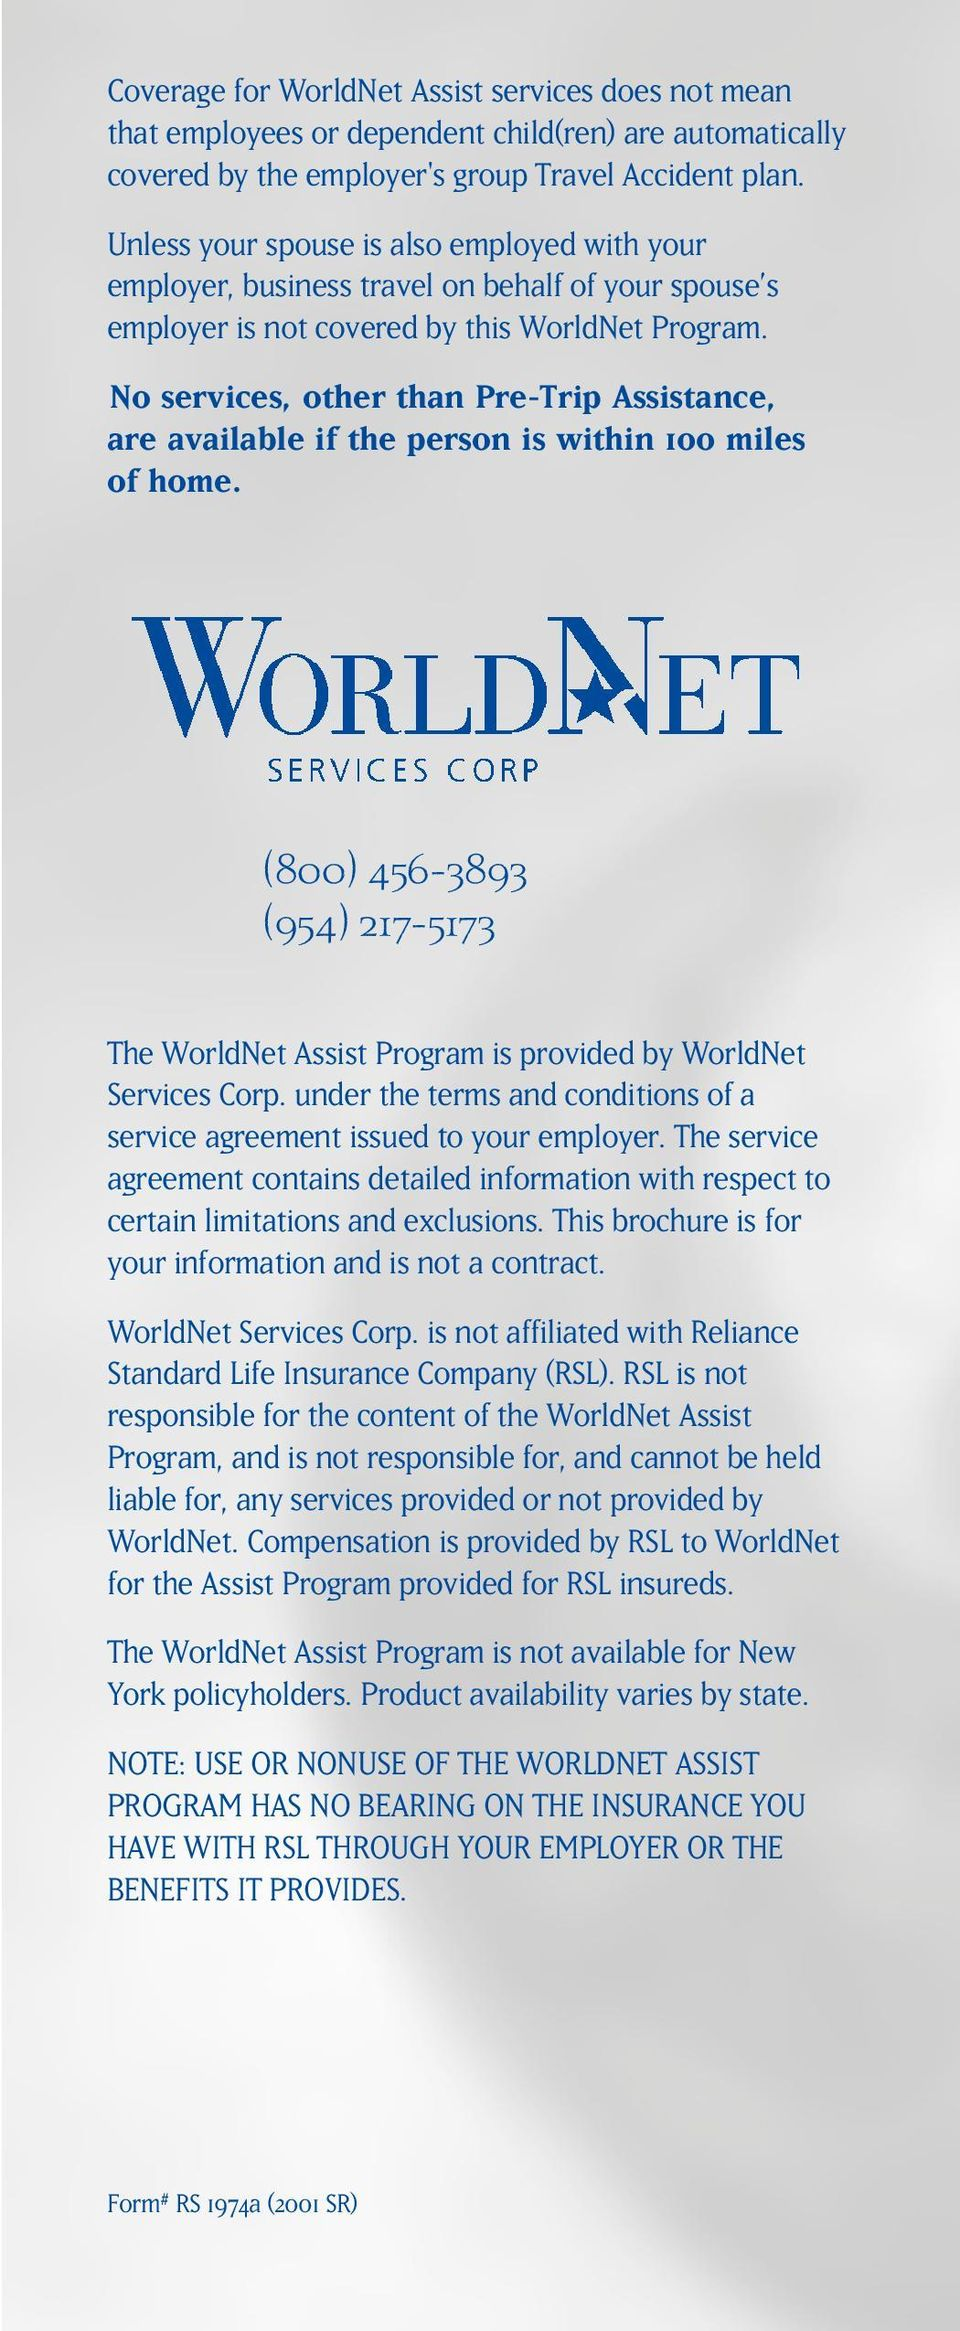 \\No services, other than Pre-Trip Assistance, are available if the person is within 100 miles of home. (800) 456-3893 (954) 217-5173 The WorldNet Assist Program is provided by WorldNet Services Corp.